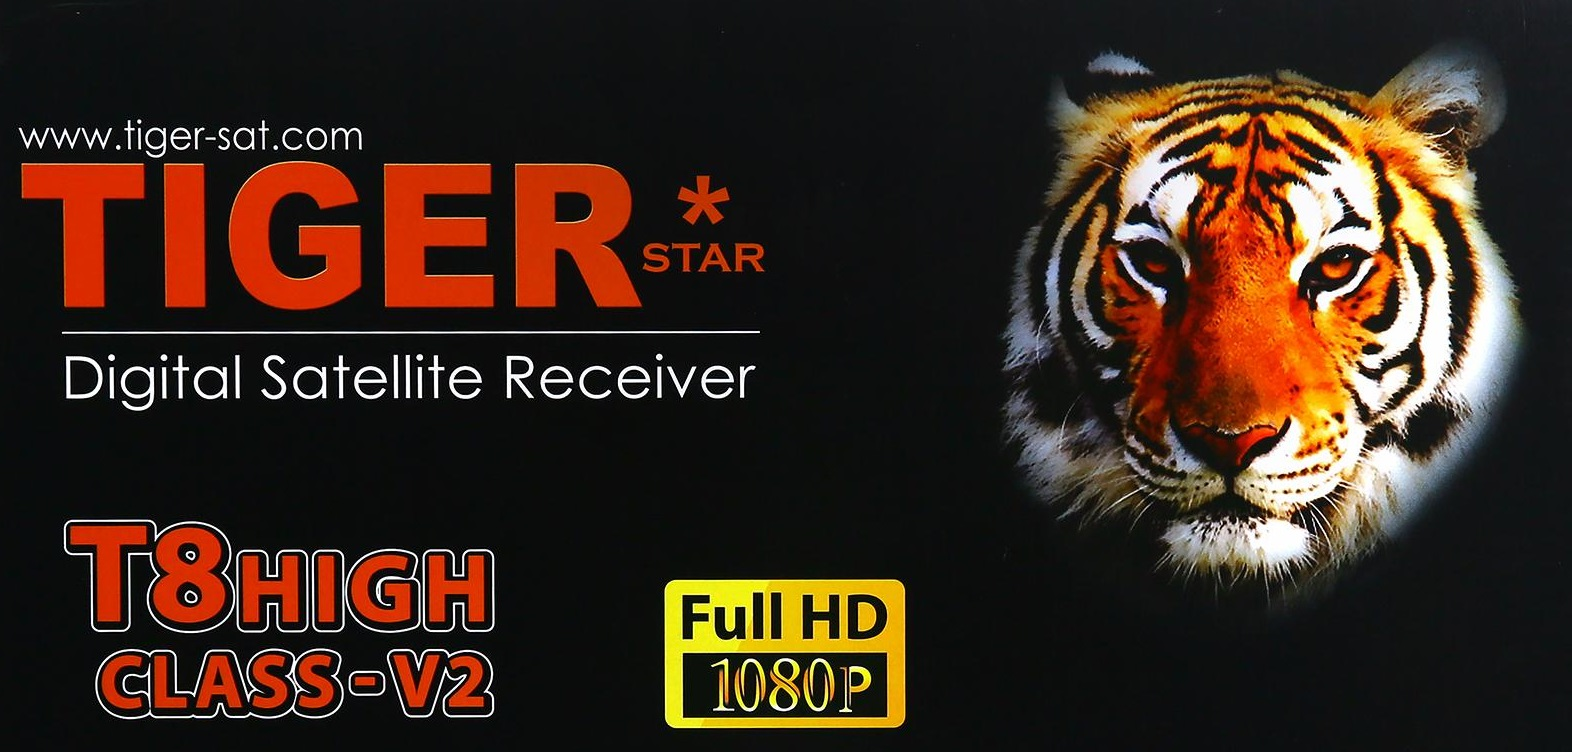 Tiger T8 High Class 4k HEVC Receiver Software 25-10-2018 - Satellite